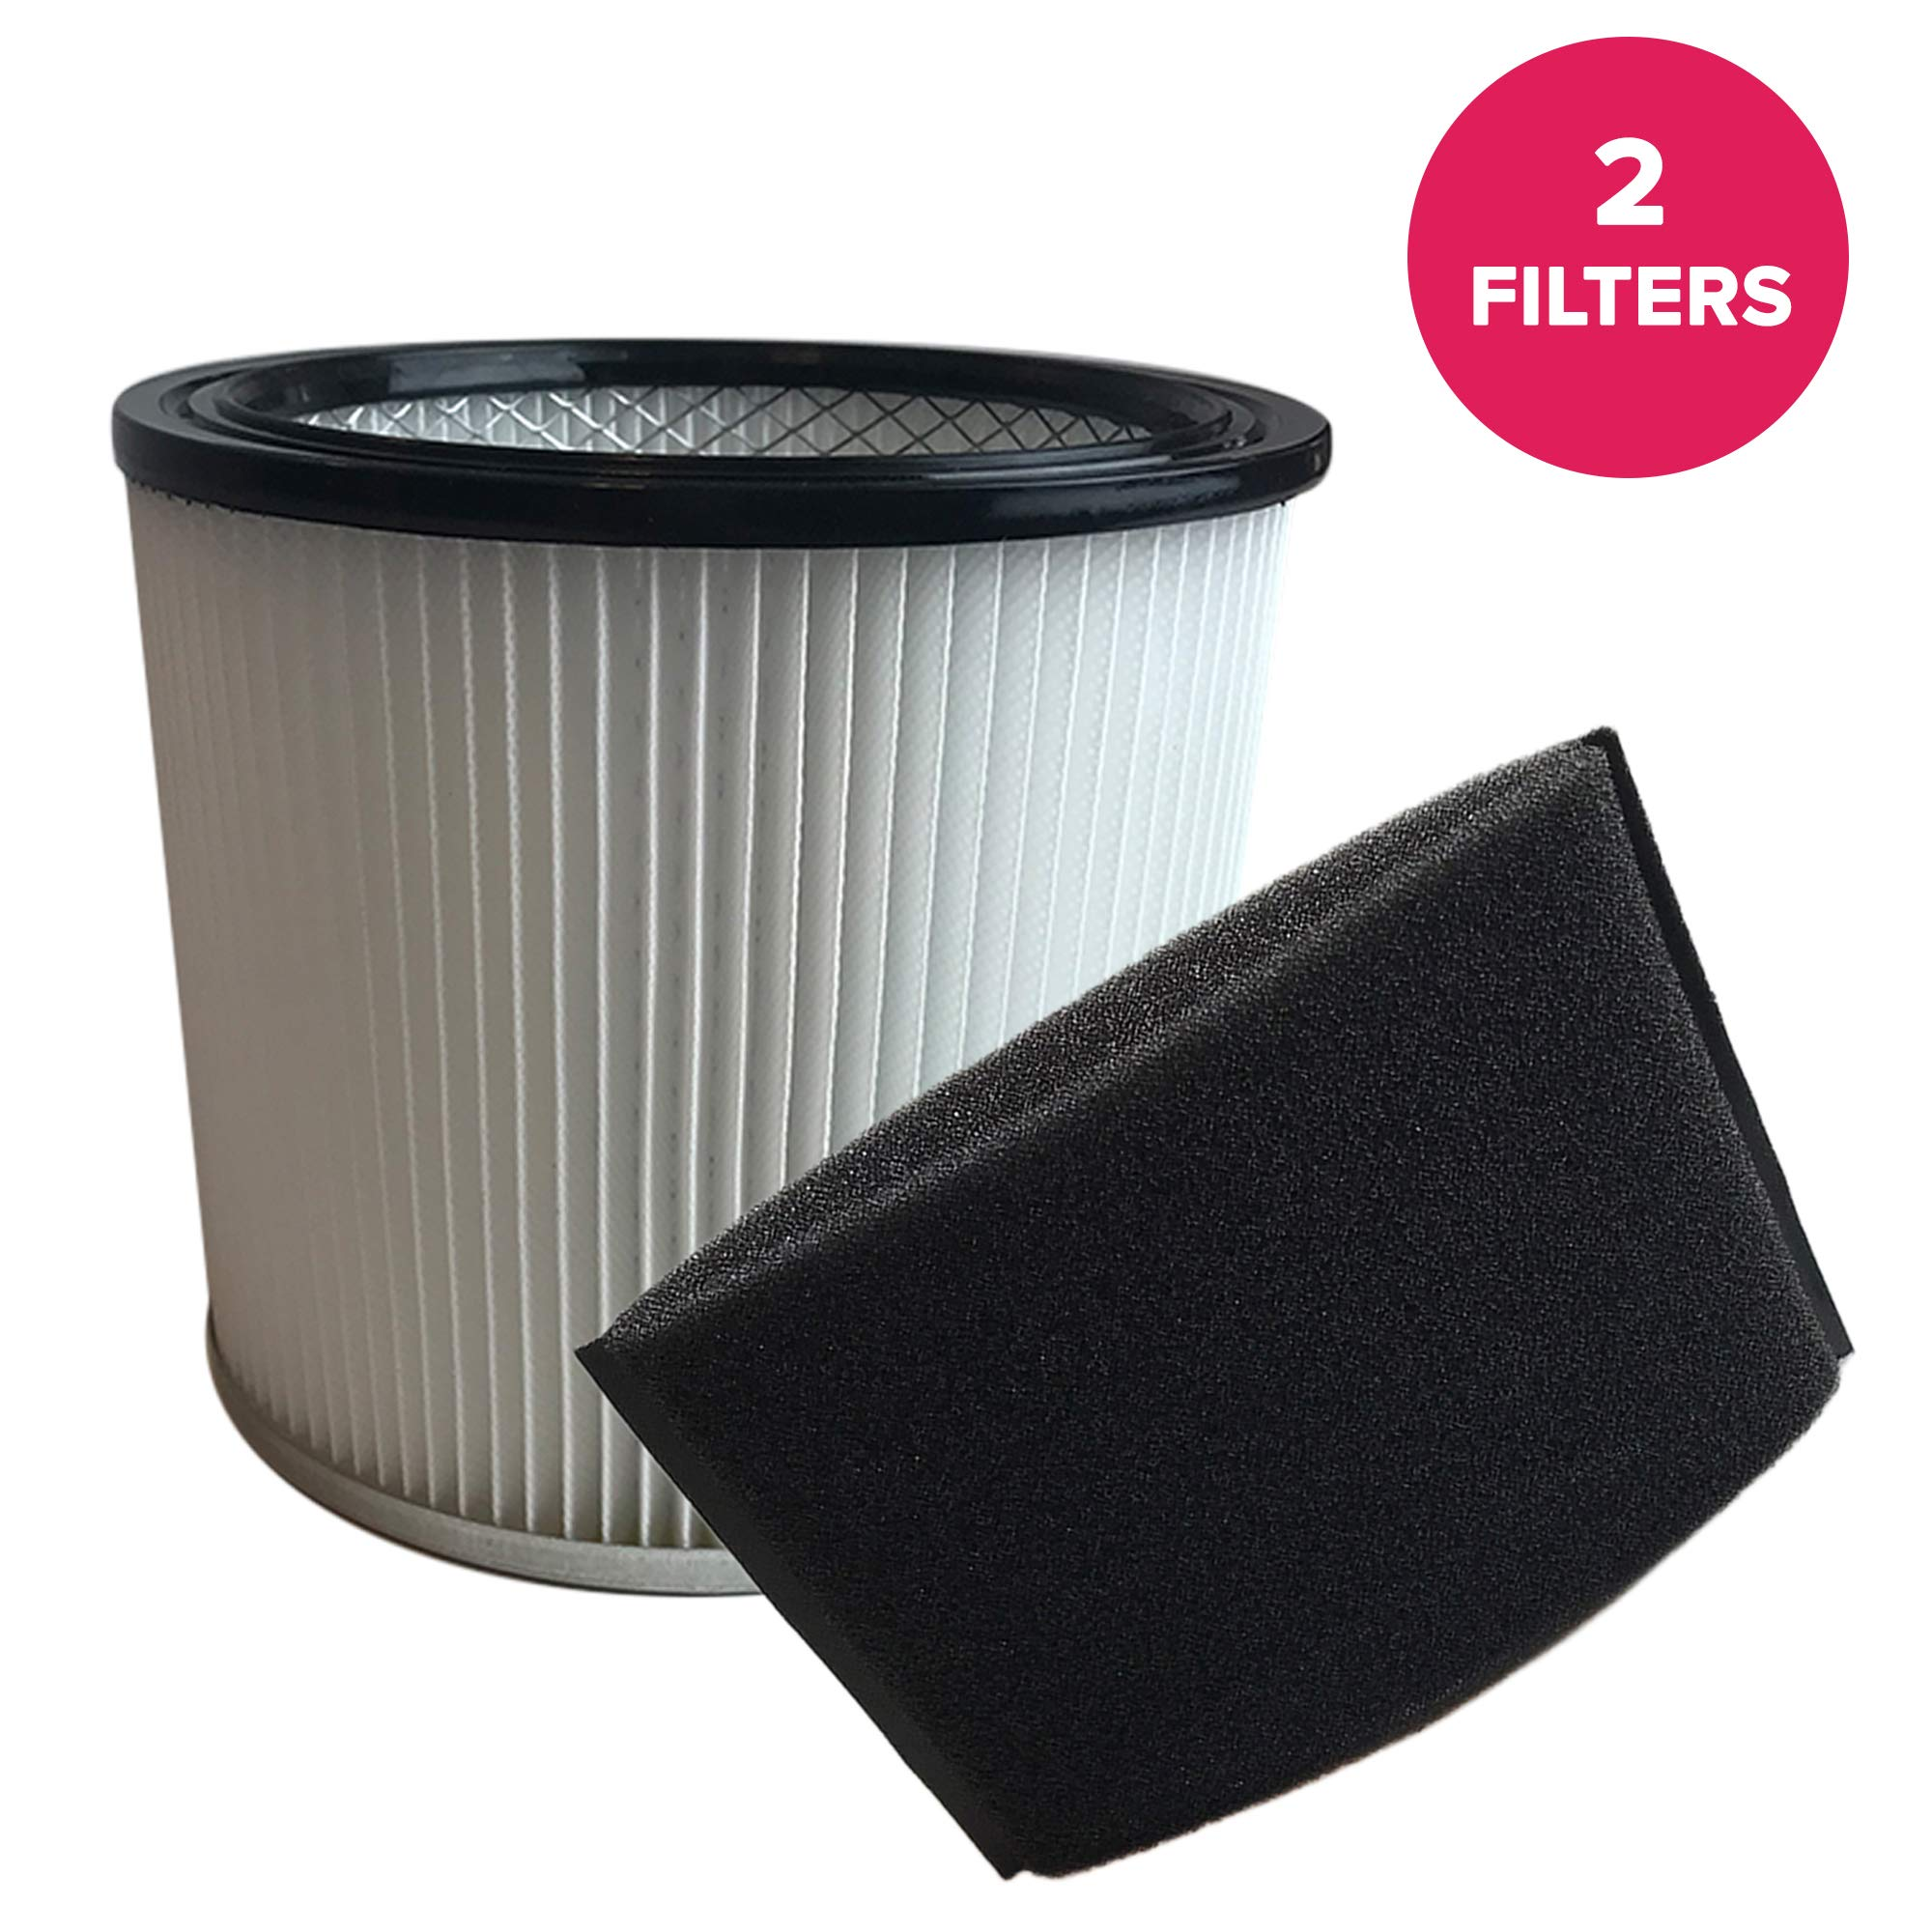 Think Crucial Replacements Cartridge Filter and Foam Sleeve Compatible with Shop-Vac Part 9030400 and 9058500, Fits 5 Gallon and Up Wet and Dry Vacuum - Bulk (2 Pack)